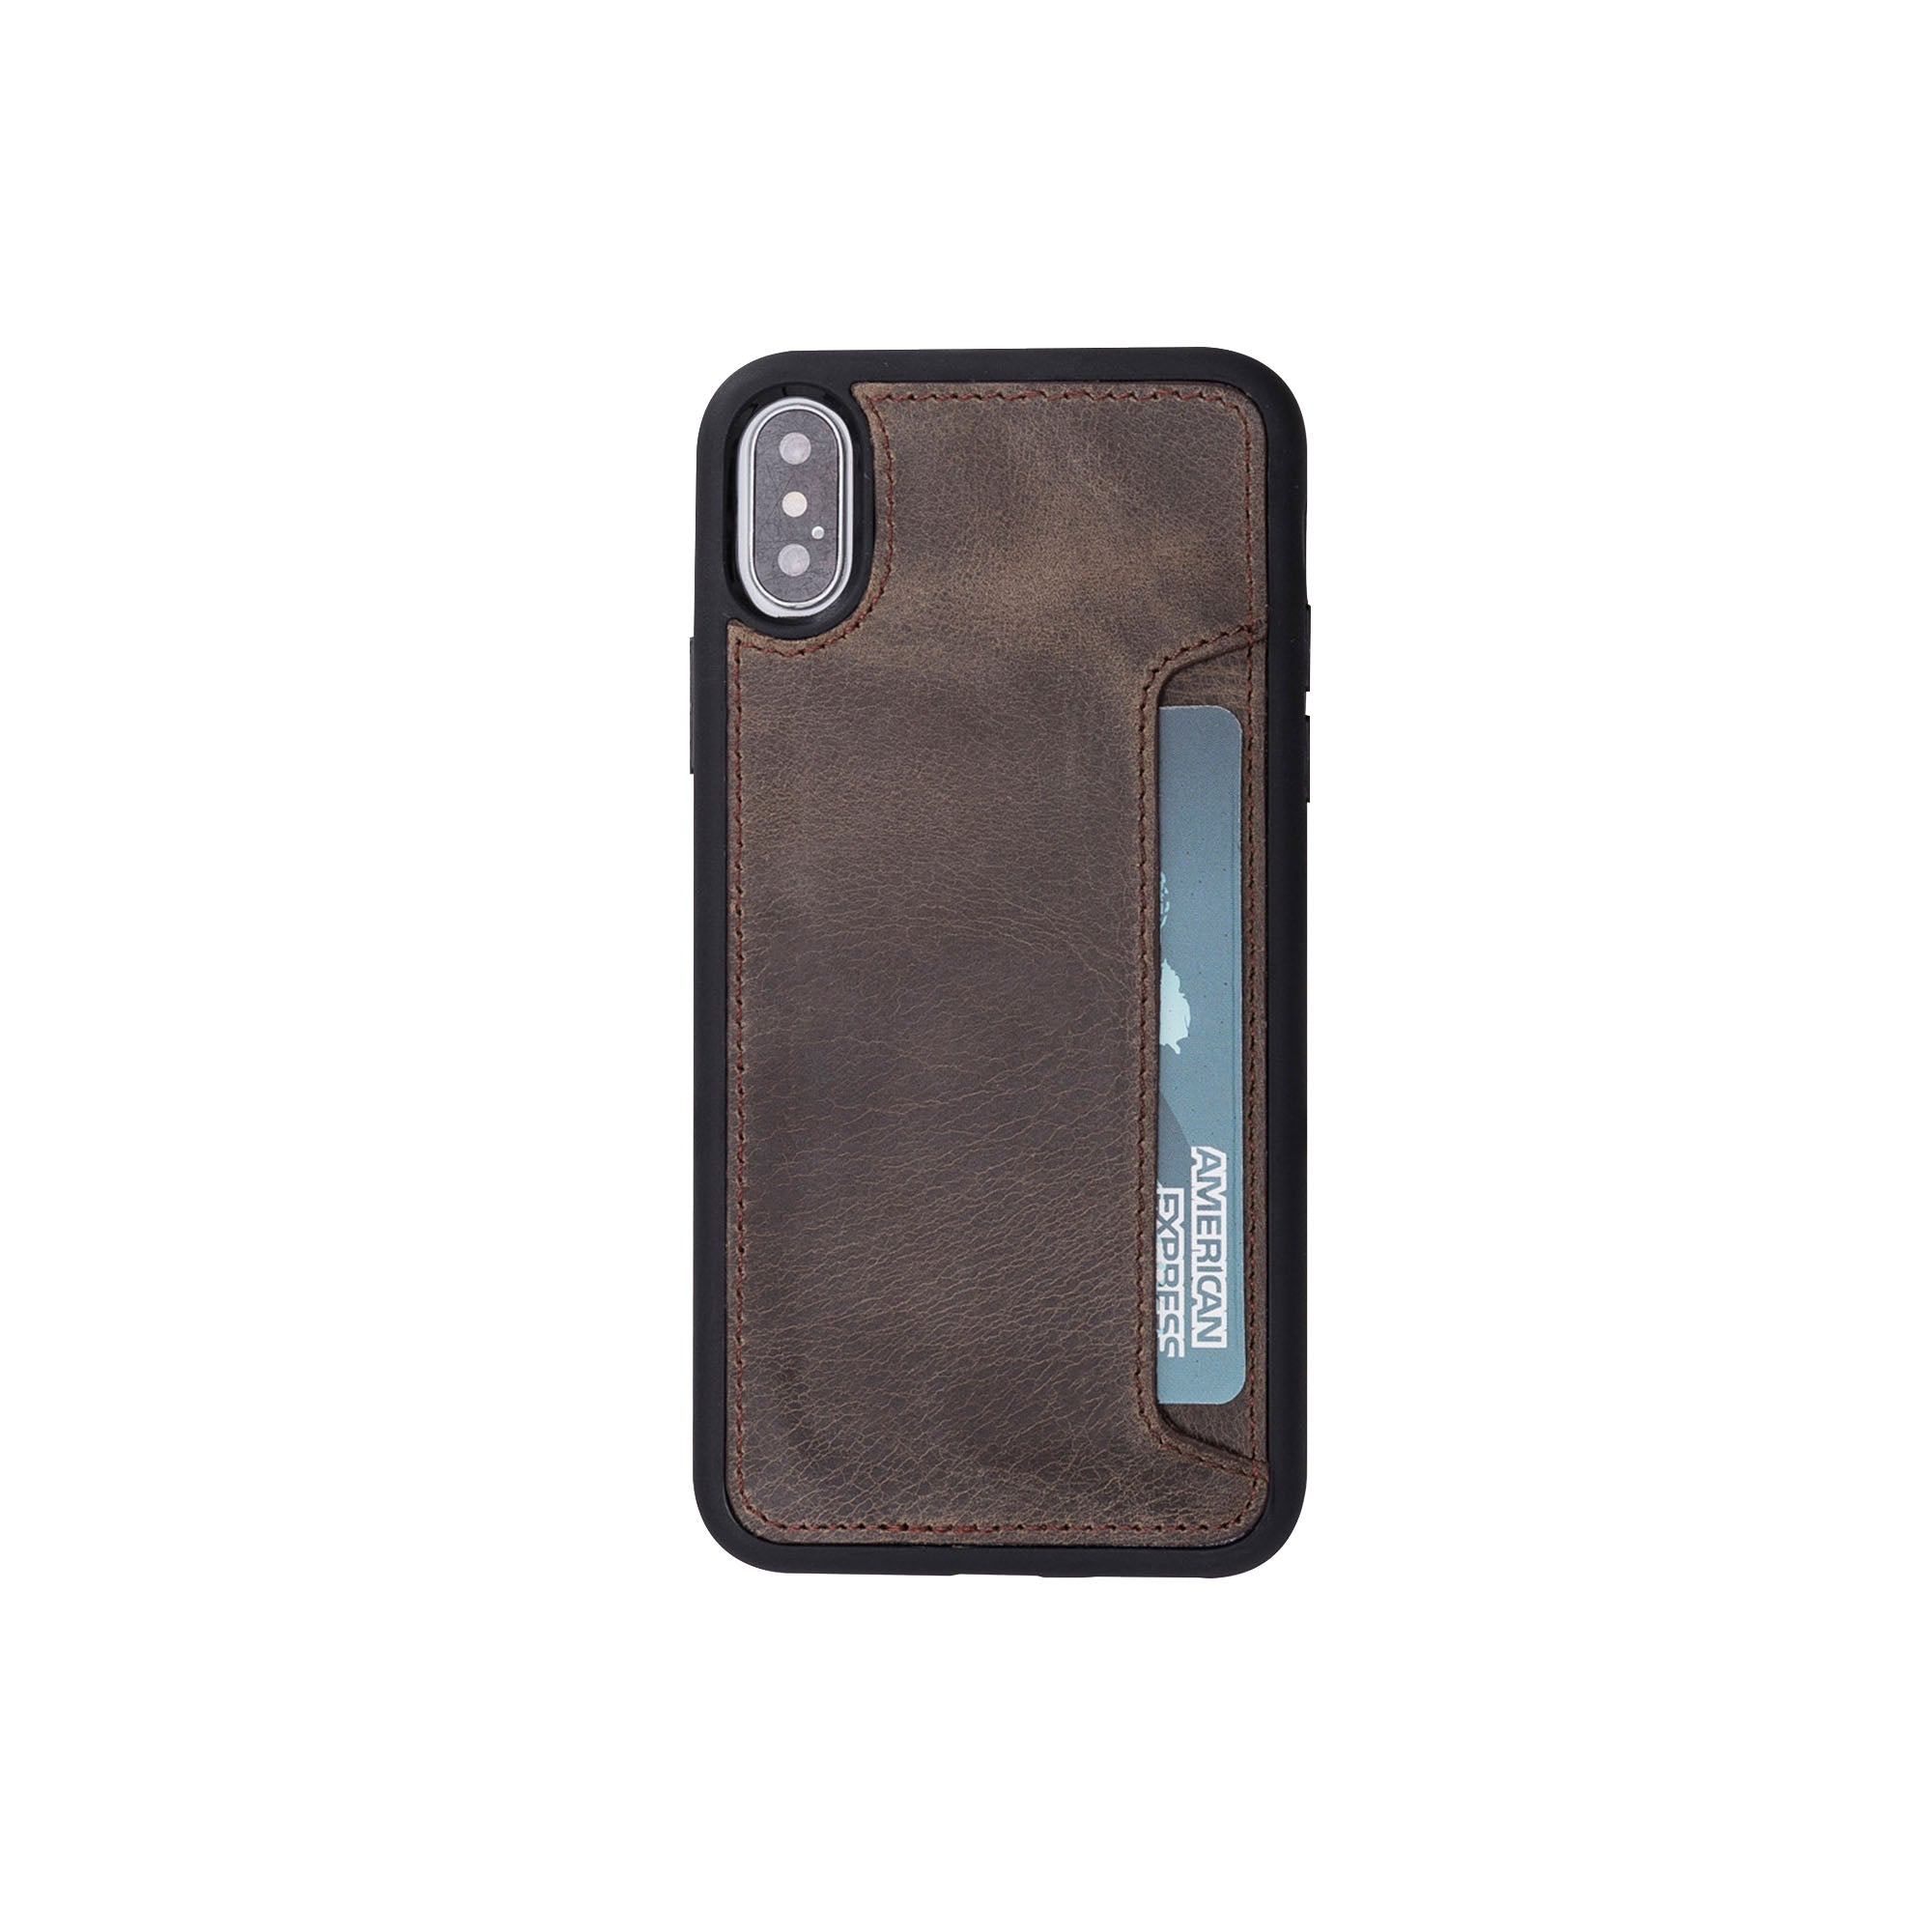 "Flex Cover CC Leather Case for iPhone X / XS (5.8"") - BROWN"